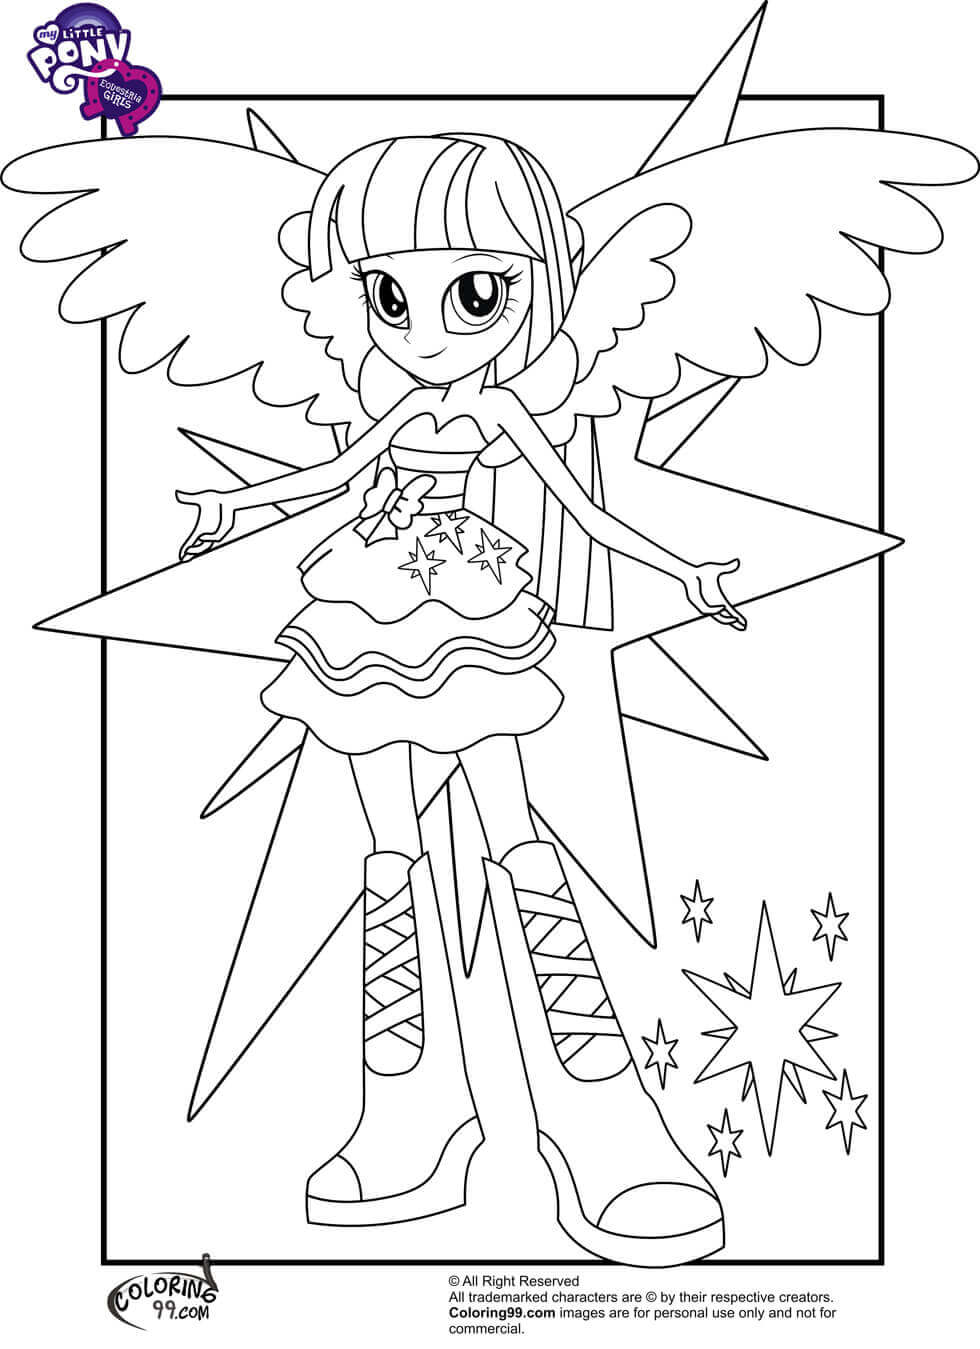 Uncategorized Mlp Eg Coloring Pages 15 printable my little pony equestria girls coloring pages twilight sparkle from page